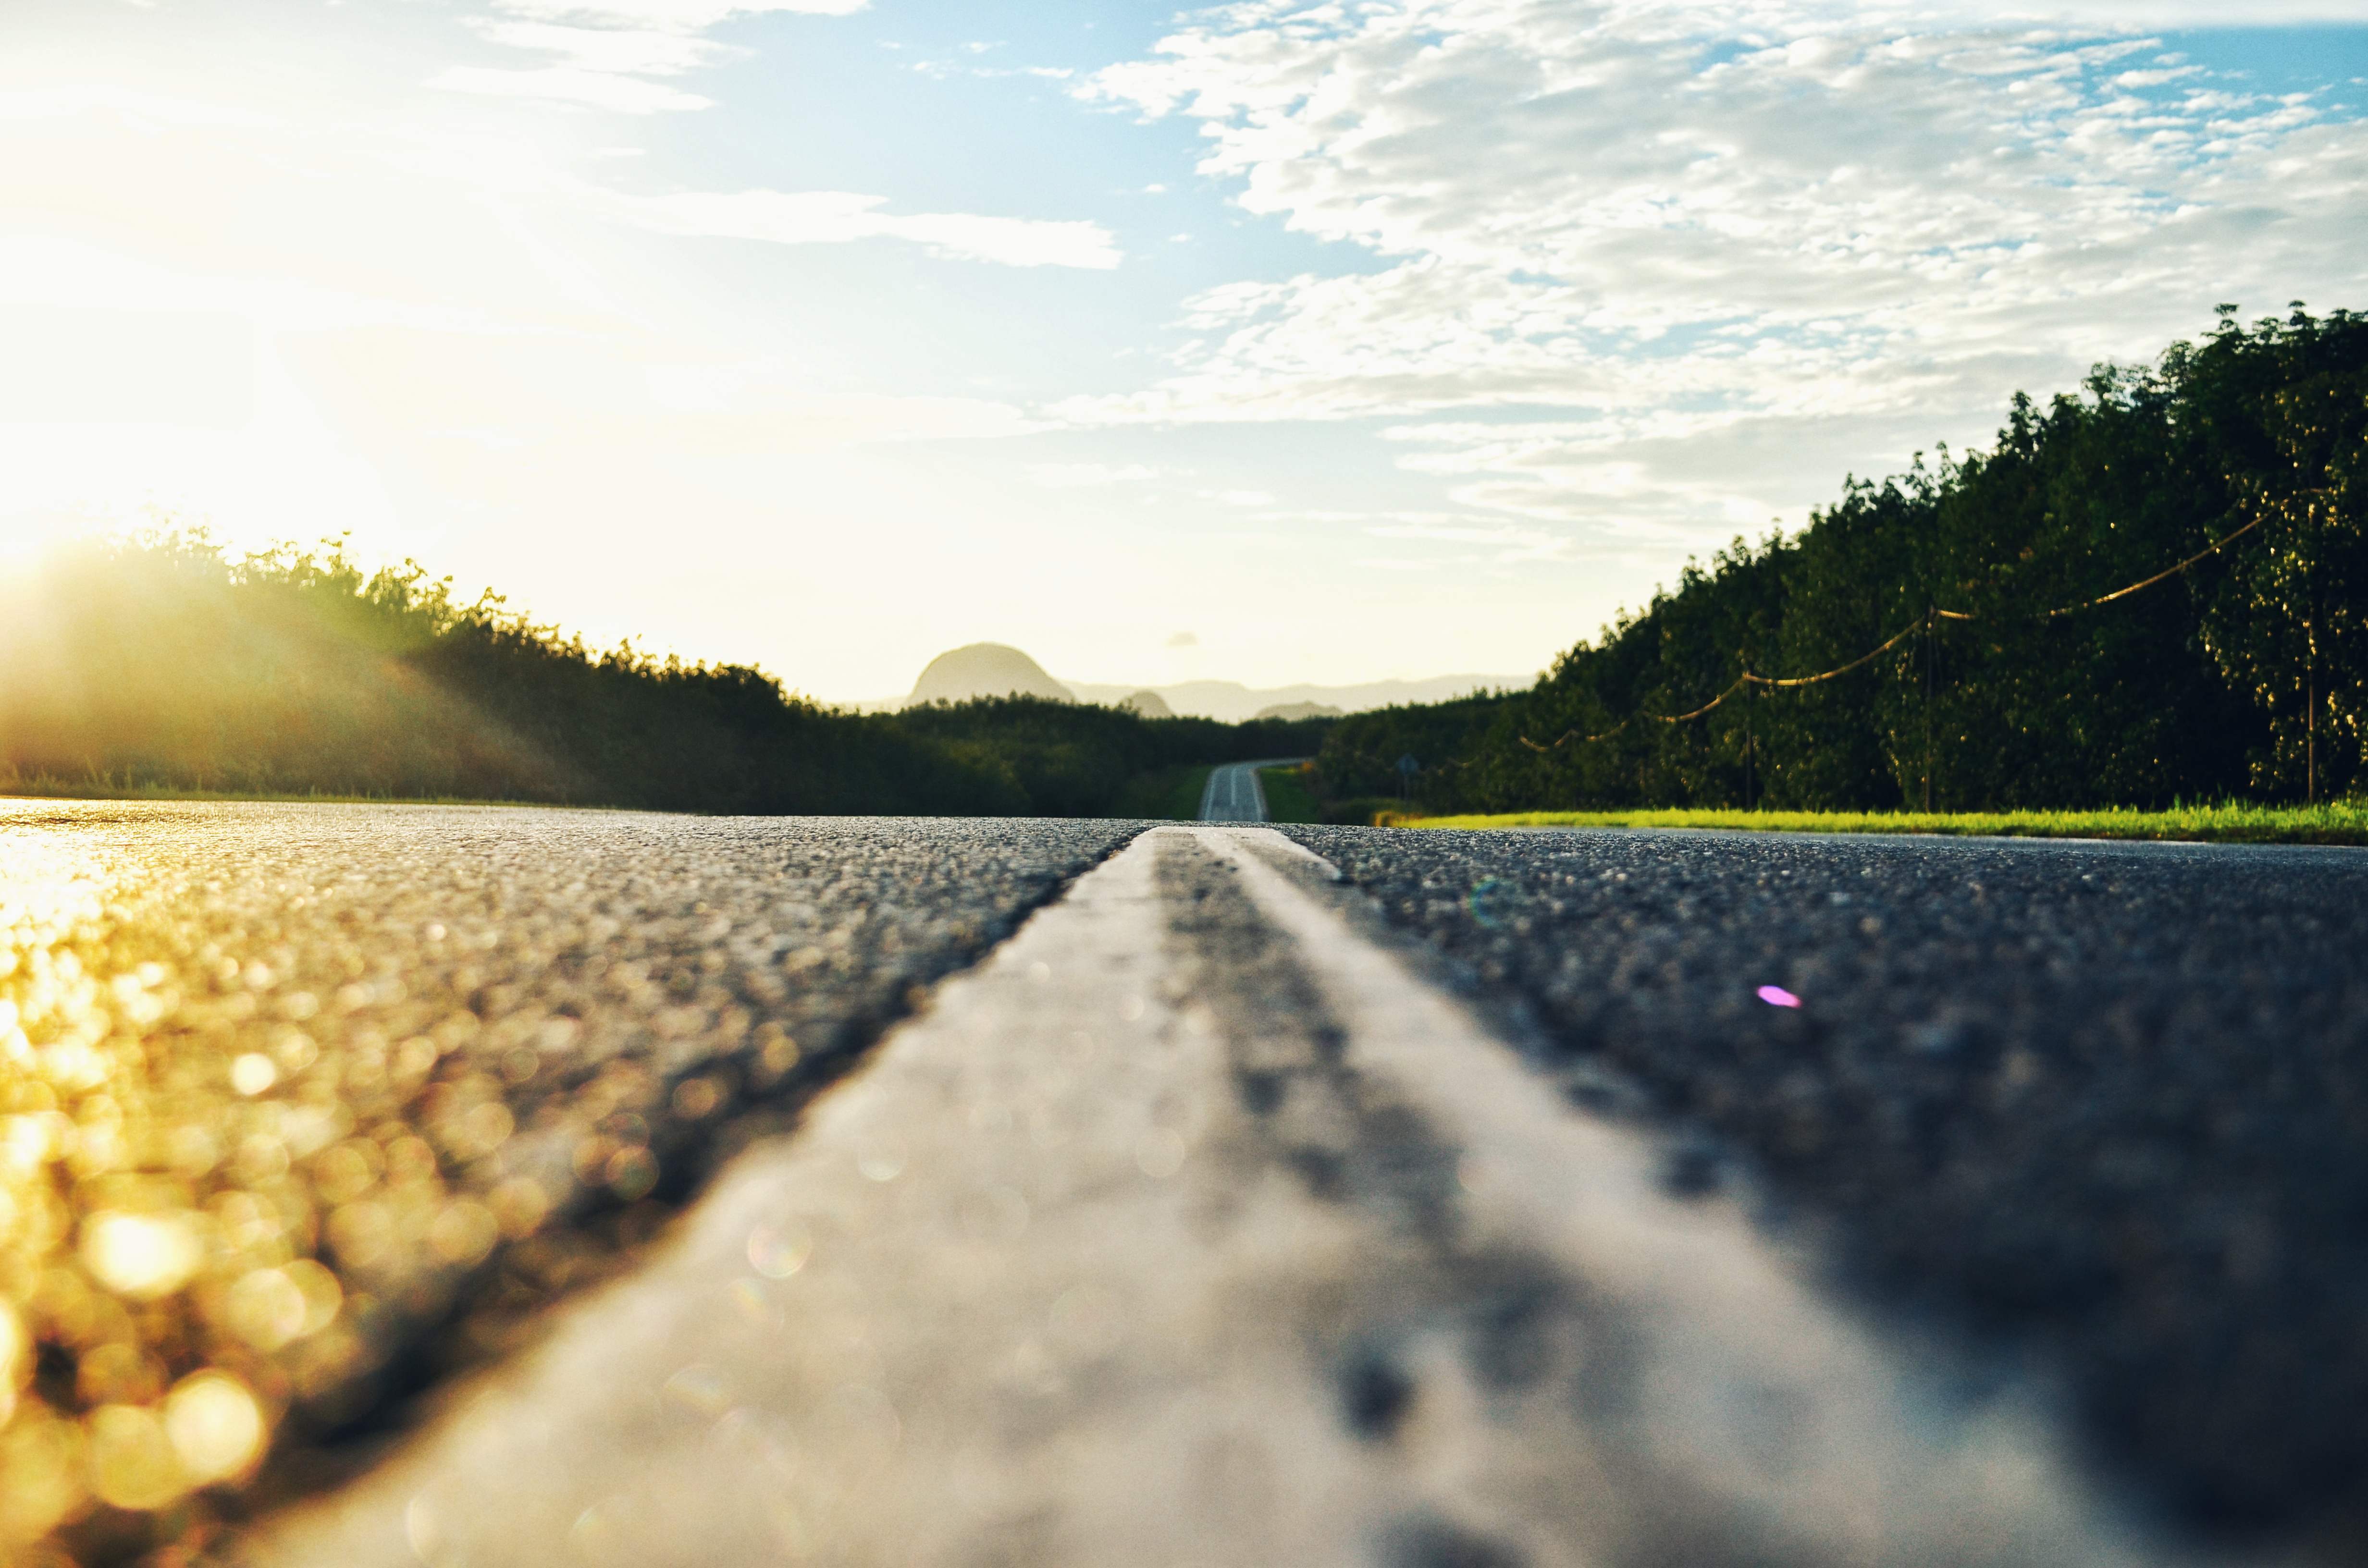 Nice Iphone 5 Wallpapers Road Images 183 Pexels 183 Free Stock Photos